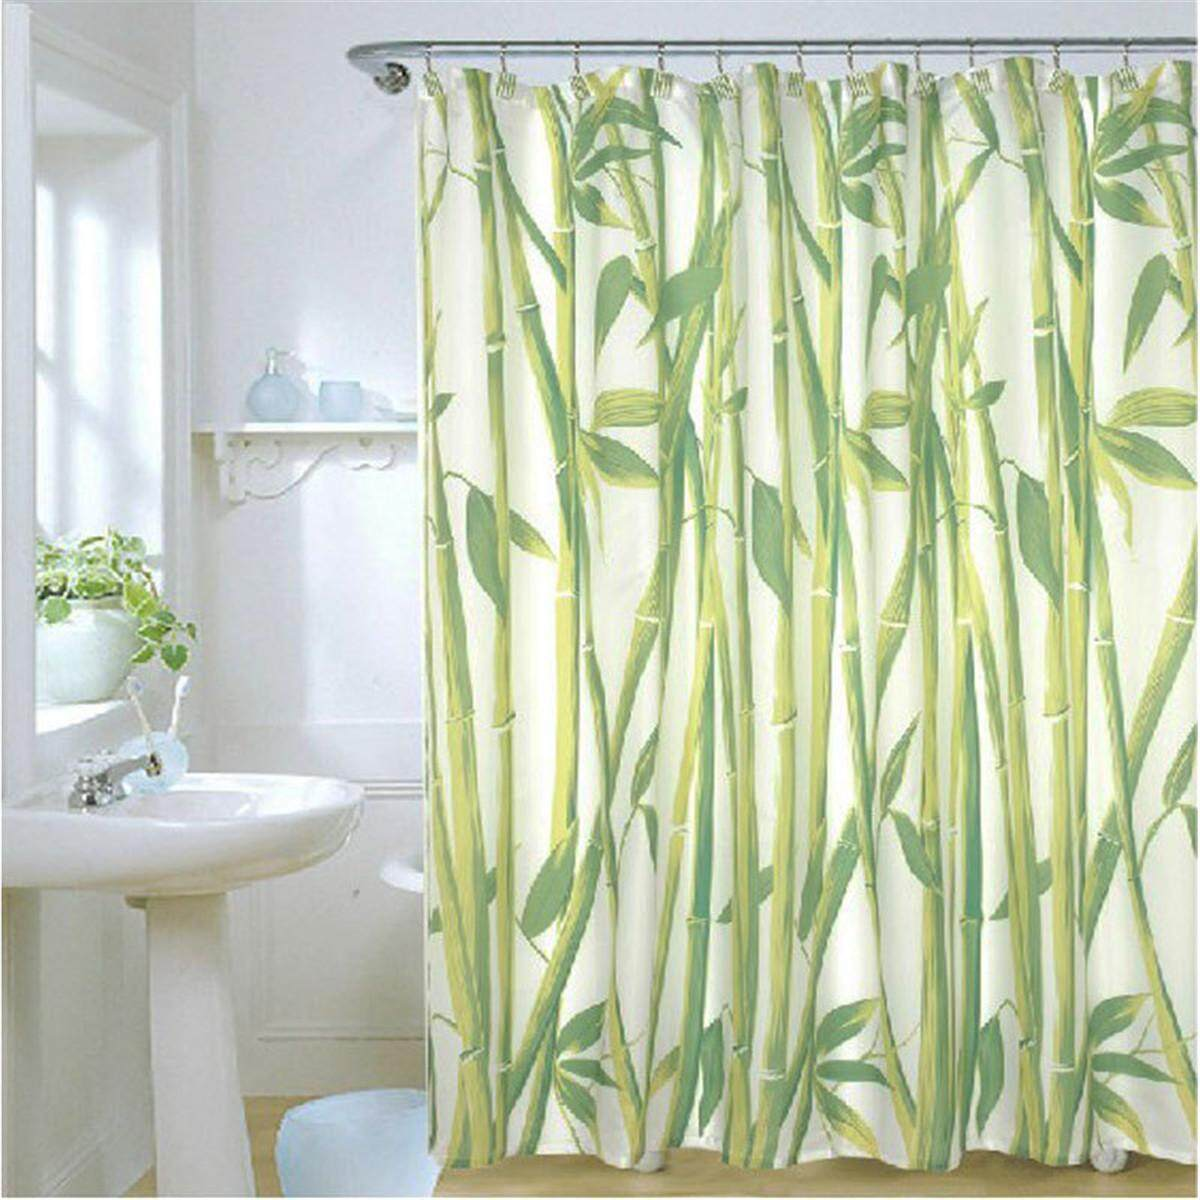 Waterproof Bathroom Fabric Shower Curtain Bamboo Tree Natural Landscape 12 Hooks By Glimmer.